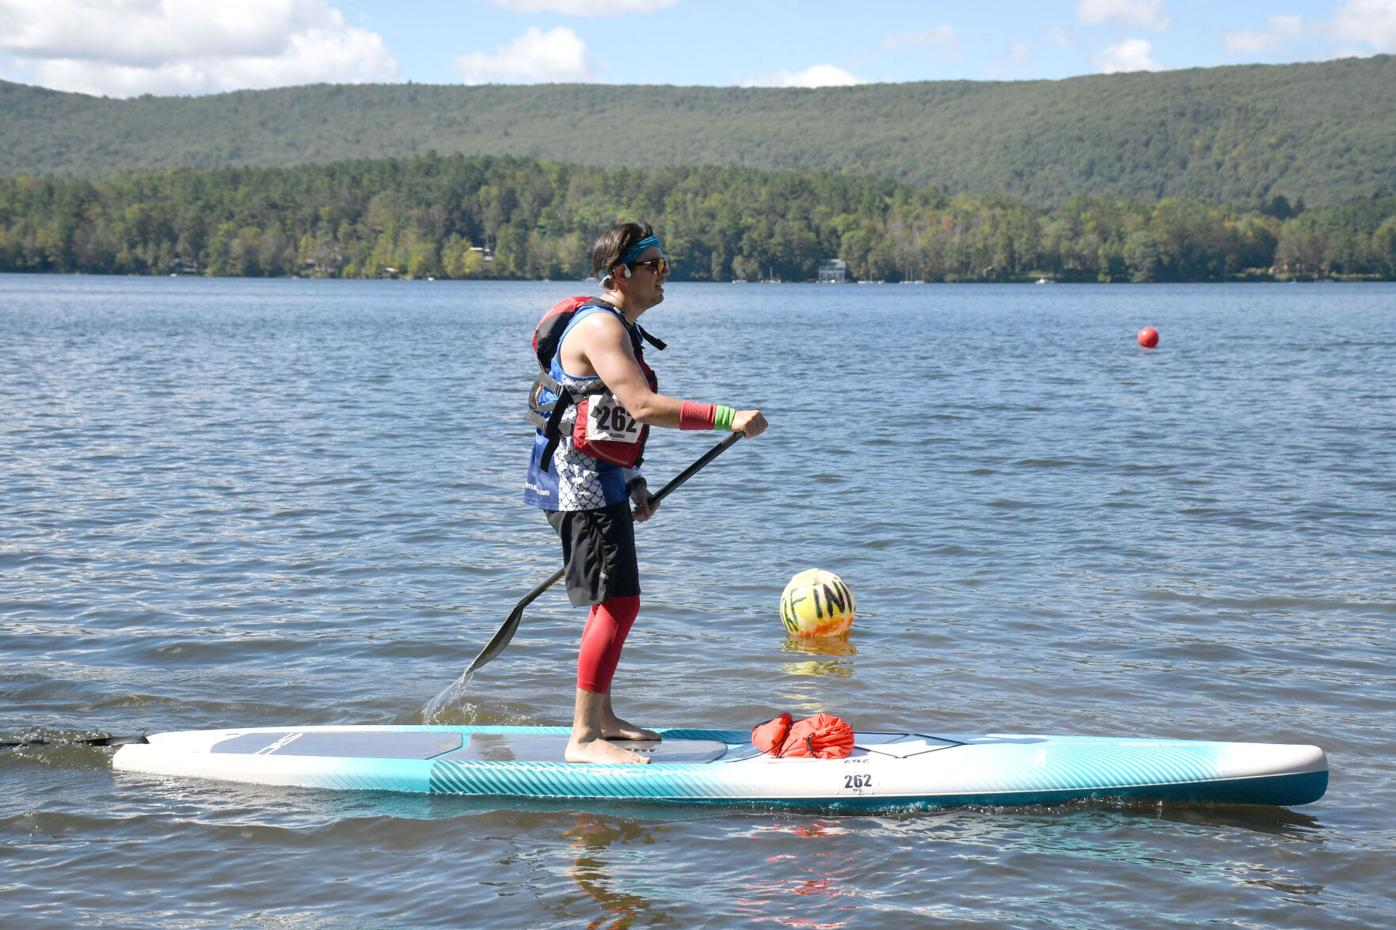 Mike paddleboards to shore